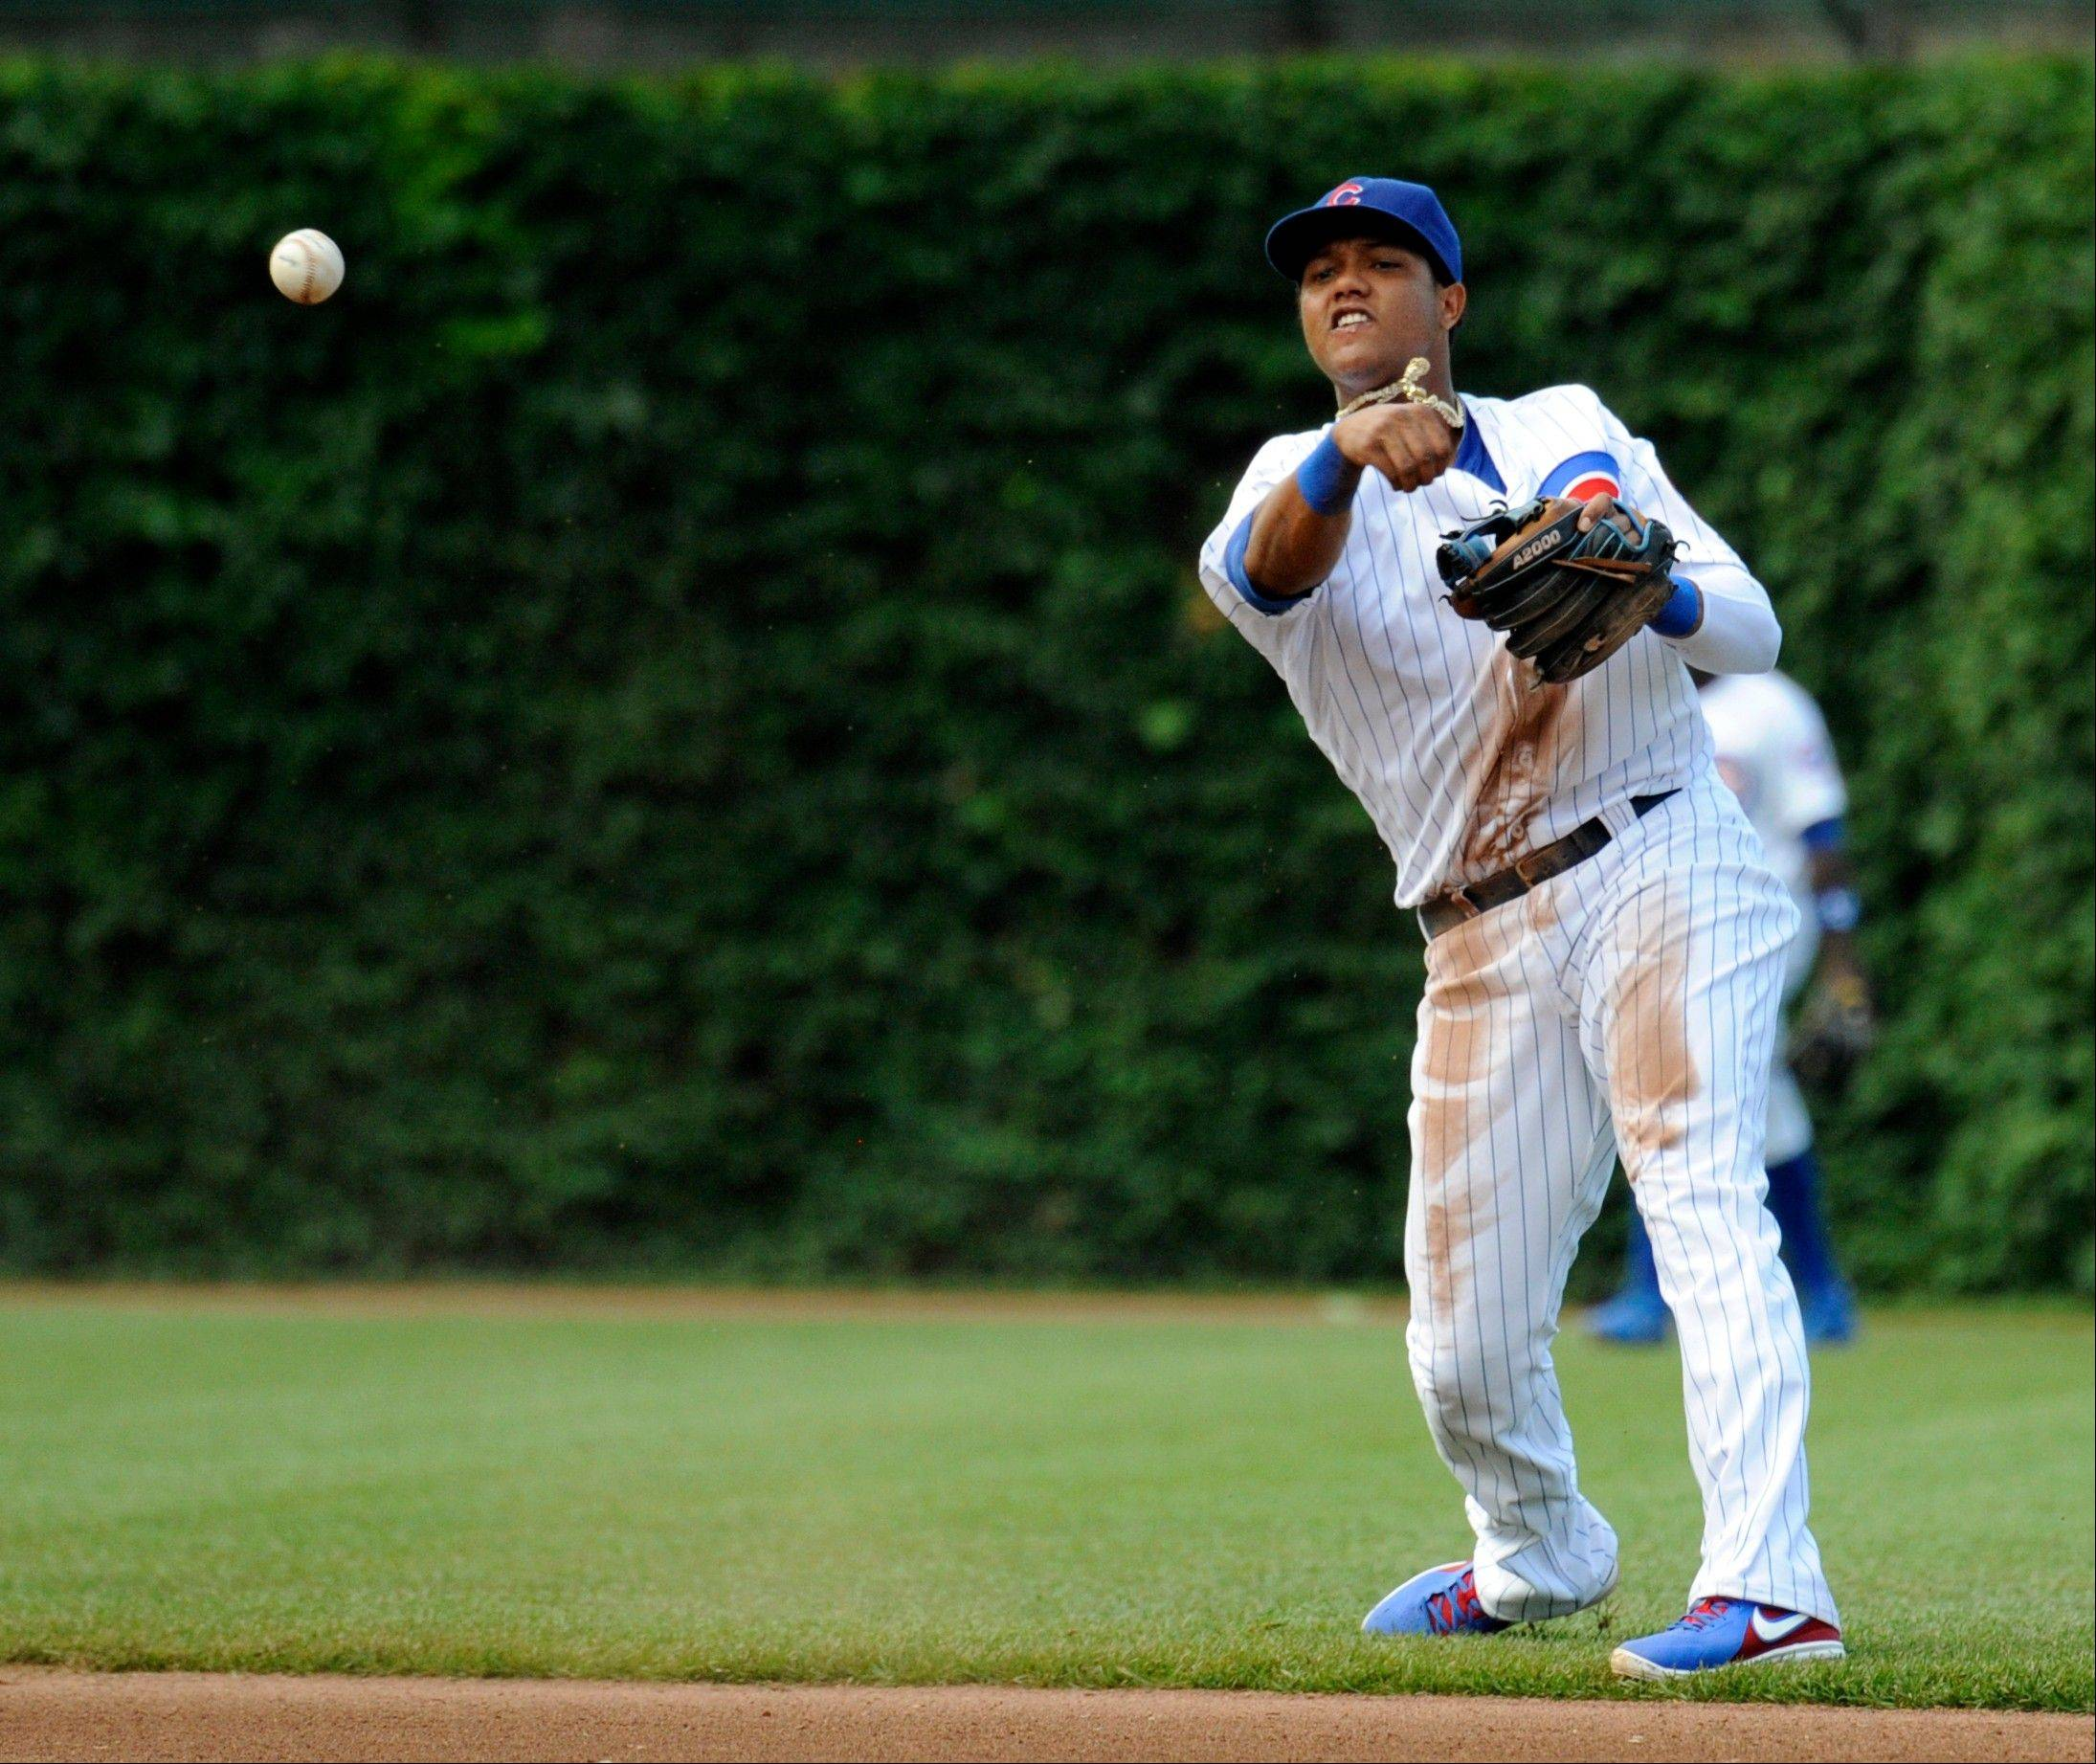 In addition to his struggles at the plate, Cubs shortstop Starlin Castro has a team-high 14 errors this season.